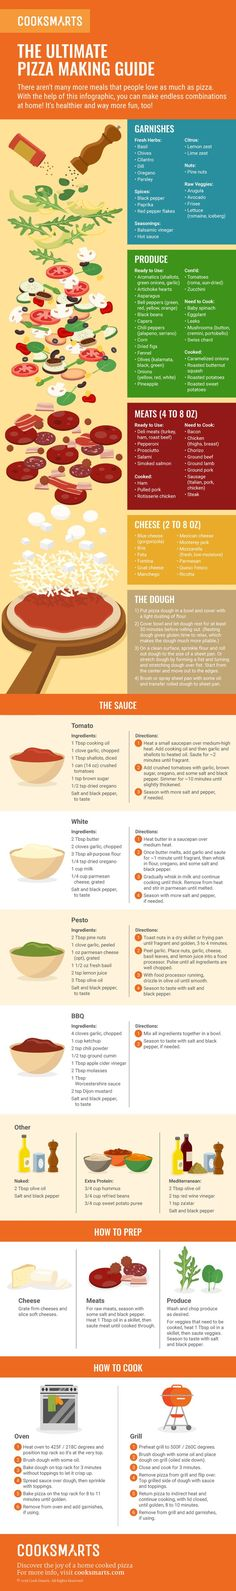 How do you make a homemade pizza? Our infographic teaches you how to create easy homemade pizza recipes with a simple formula and 30 combo ideas! Dinner Recipes Easy Quick, Quick Easy Meals, Recipes Dinner, Recipe For 8, No Dairy Recipes, Pizza Recipes, Cook Smarts, Making Homemade Pizza, Inexpensive Meals